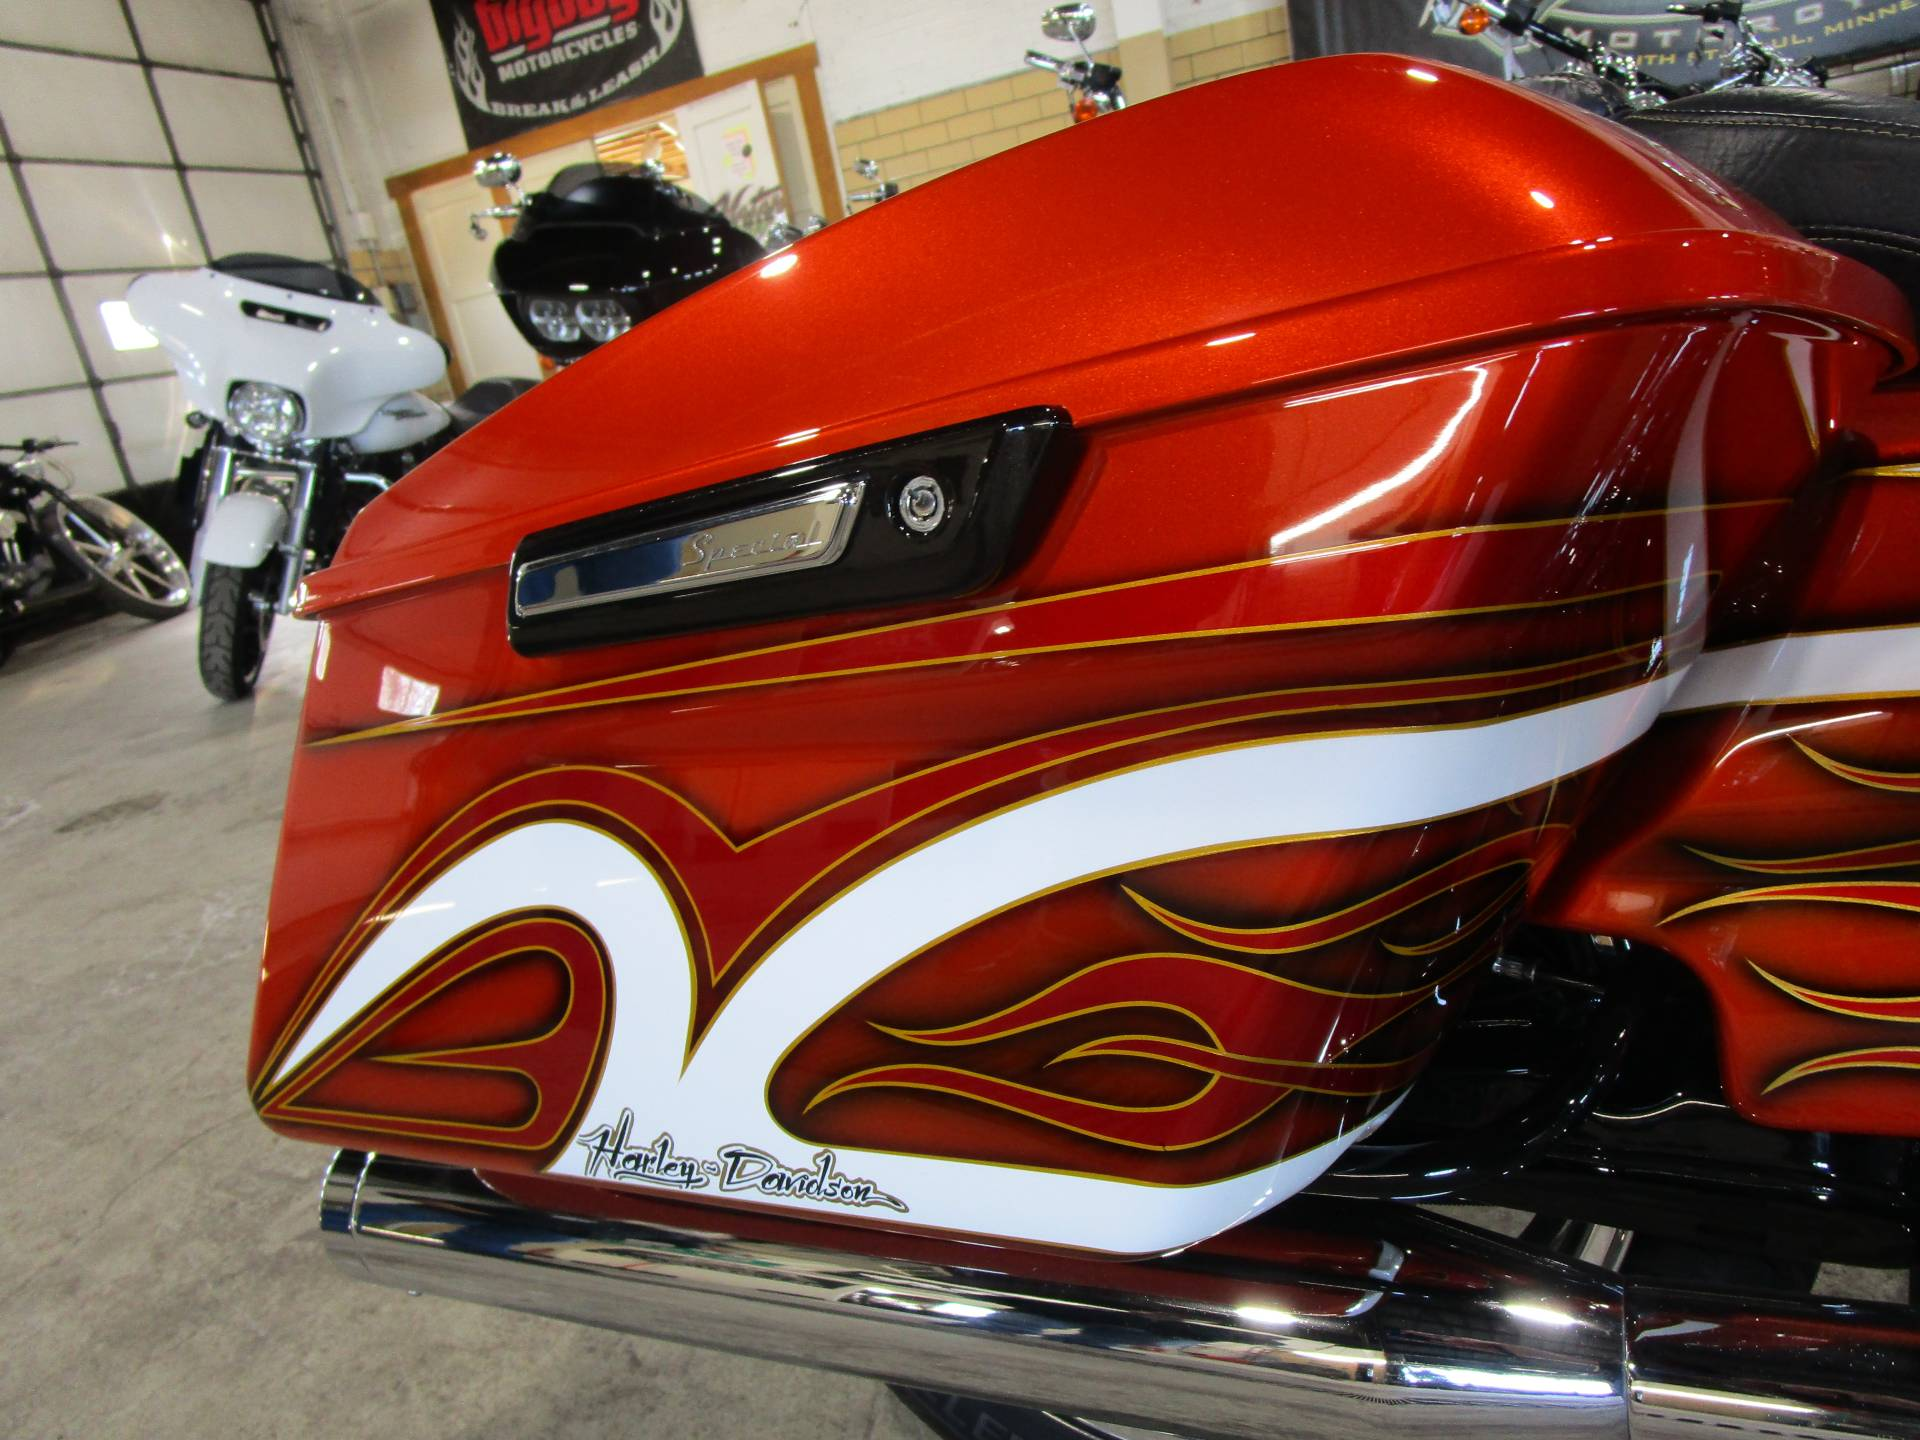 2016 Harley-Davidson Road Glide® Special in South Saint Paul, Minnesota - Photo 15